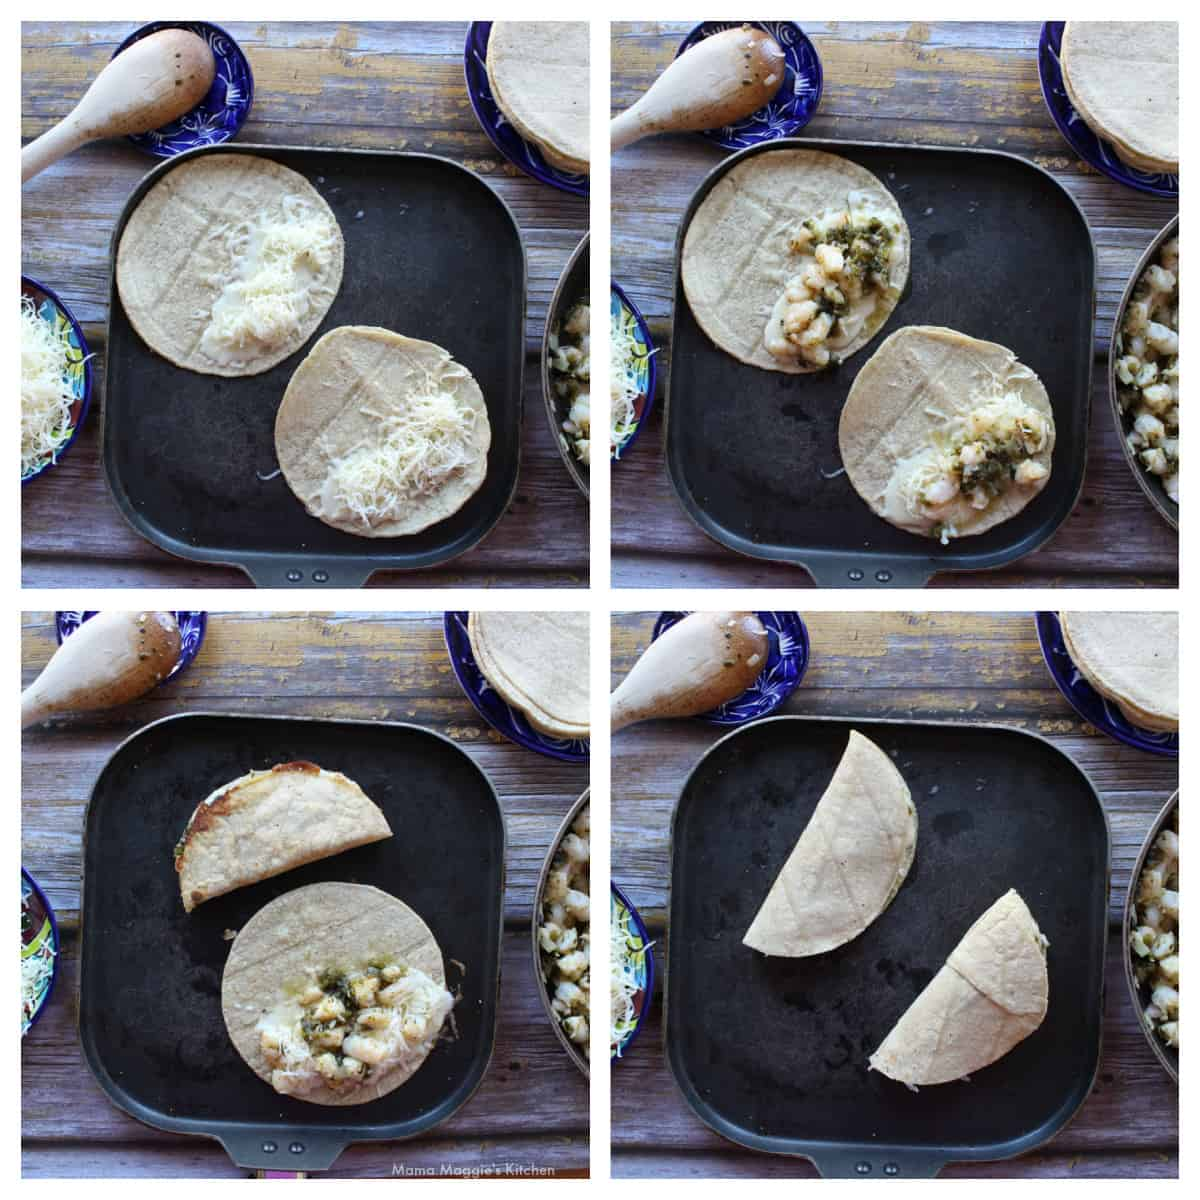 A collage showing how to make the Tacos Gobernador.